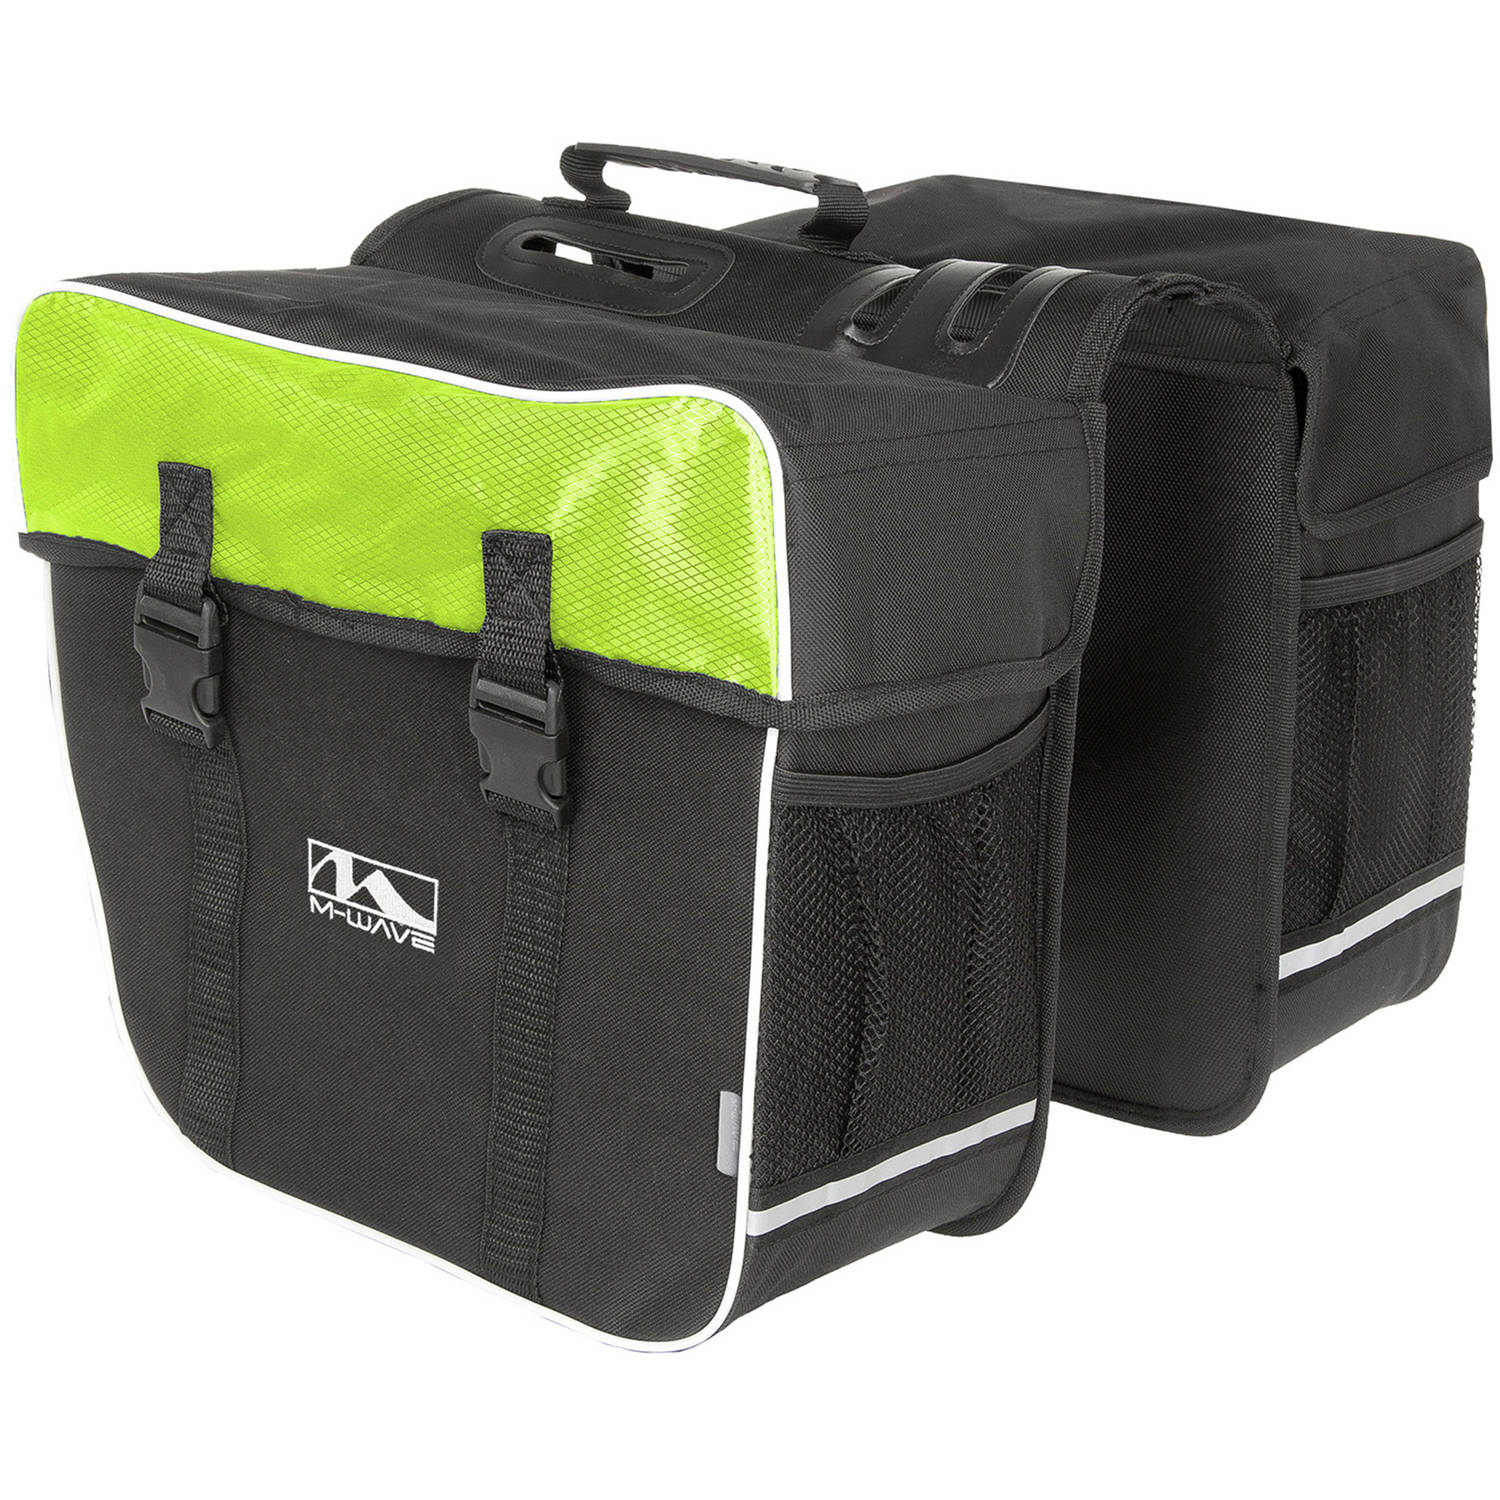 Amsterdam Double Bicycle Pannier Bag in Black/Green